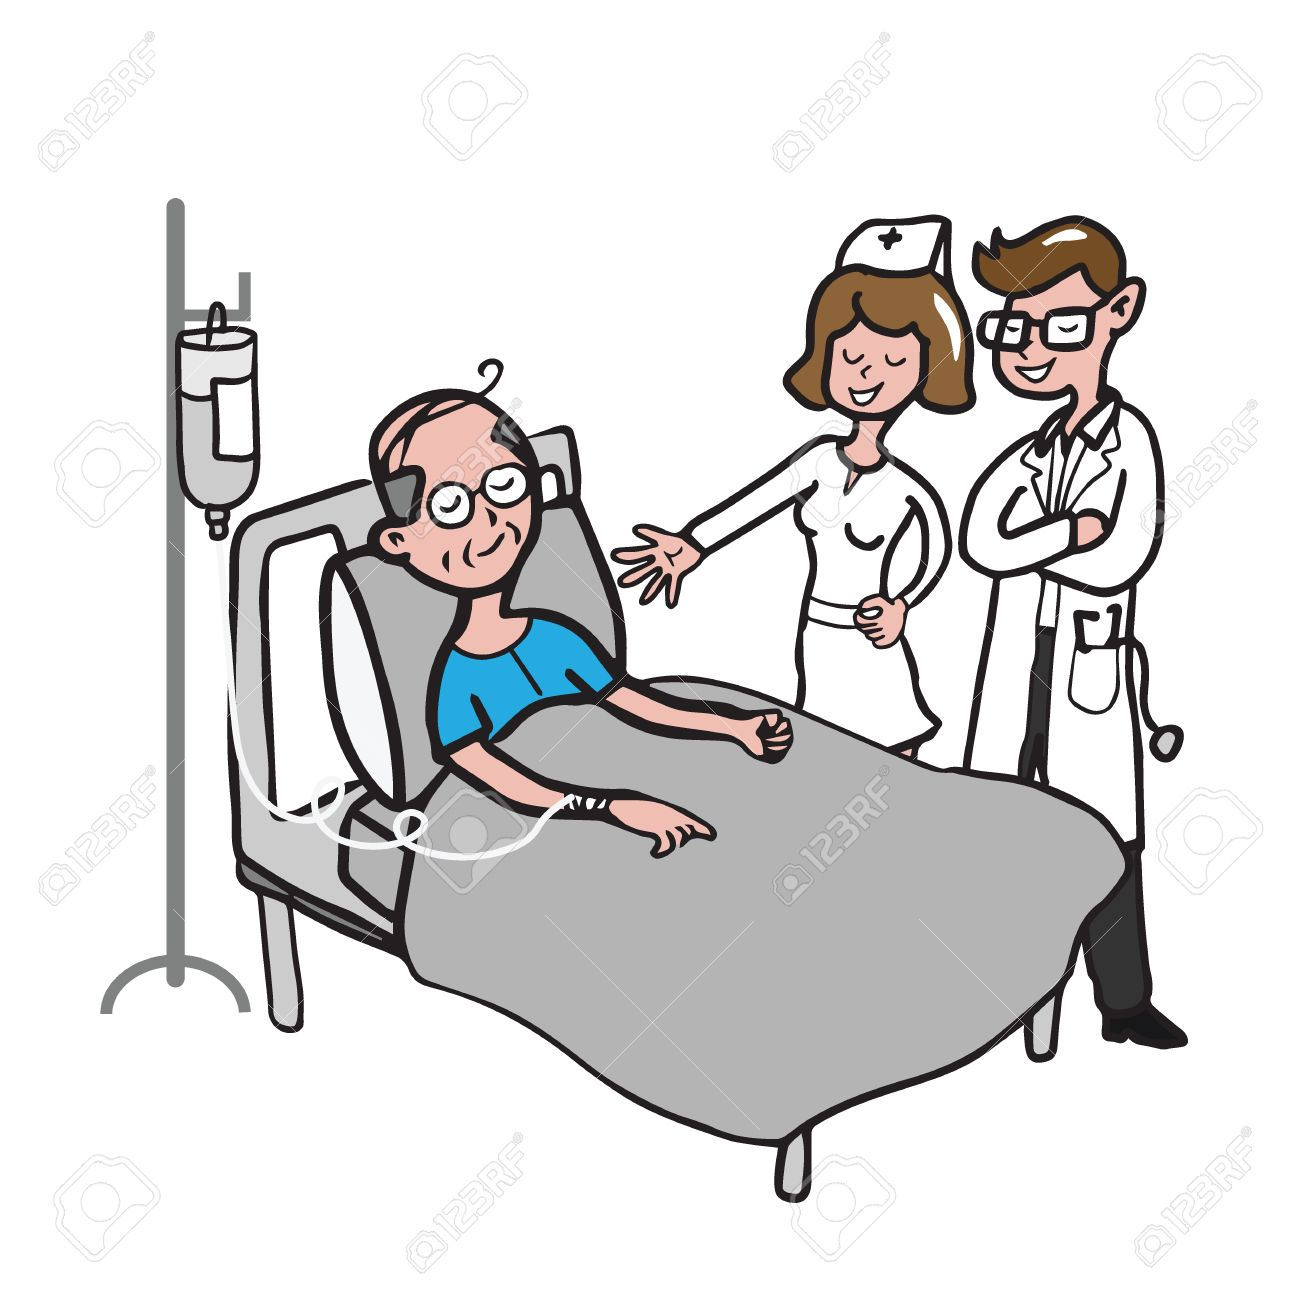 Doctor And Nurse Visit Old Man Patient Cartoon Drawing Royalty Free Cliparts Vectors And Stock Illustration Image 63377538